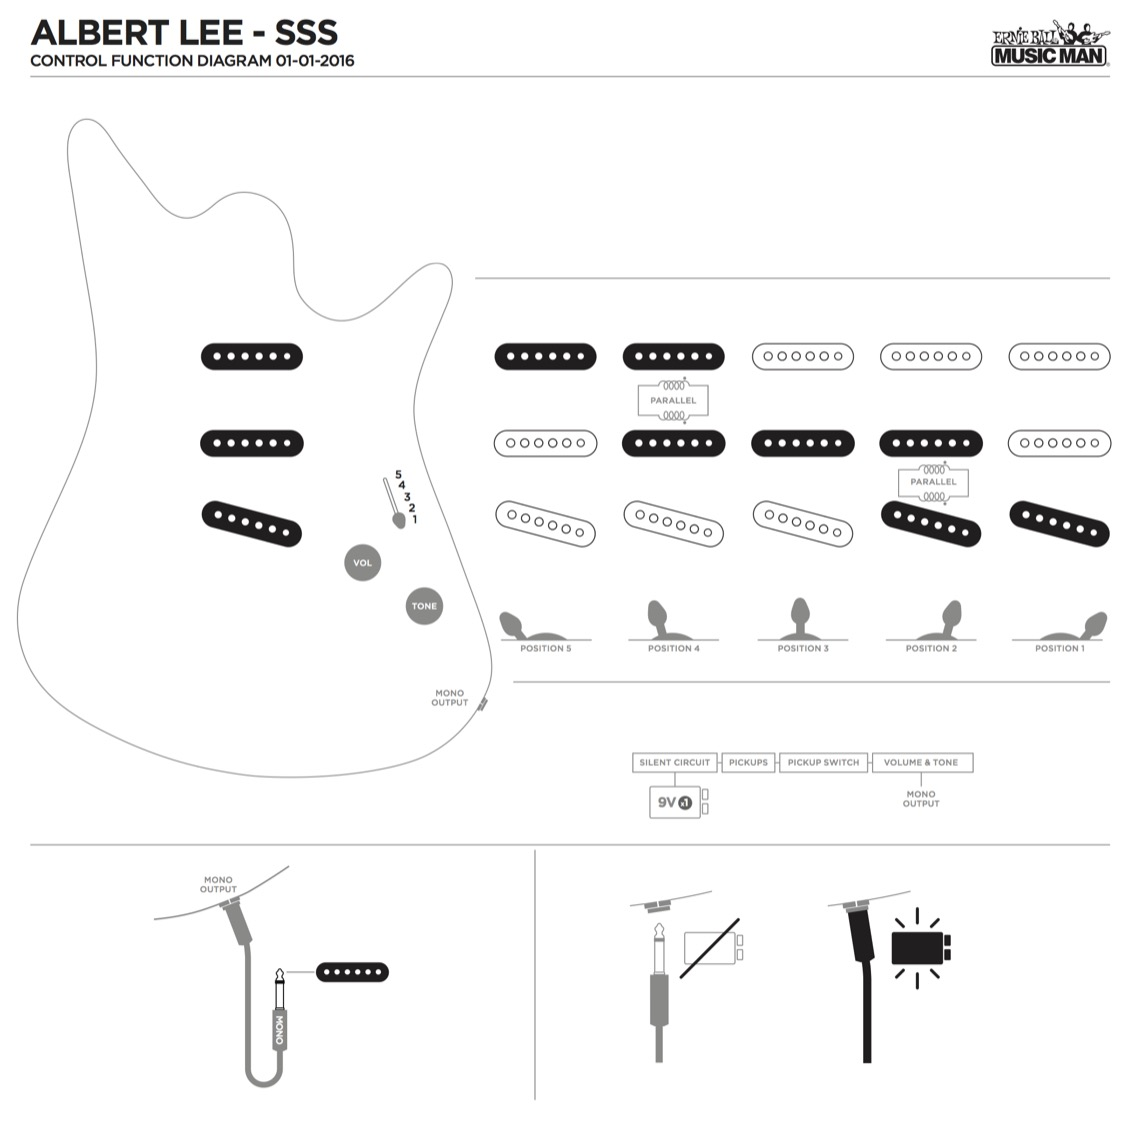 hight resolution of ernie ball wiring diagram wiring libraryalbert lee ernie ball wiring diagram diy enthusiasts wiring diagrams